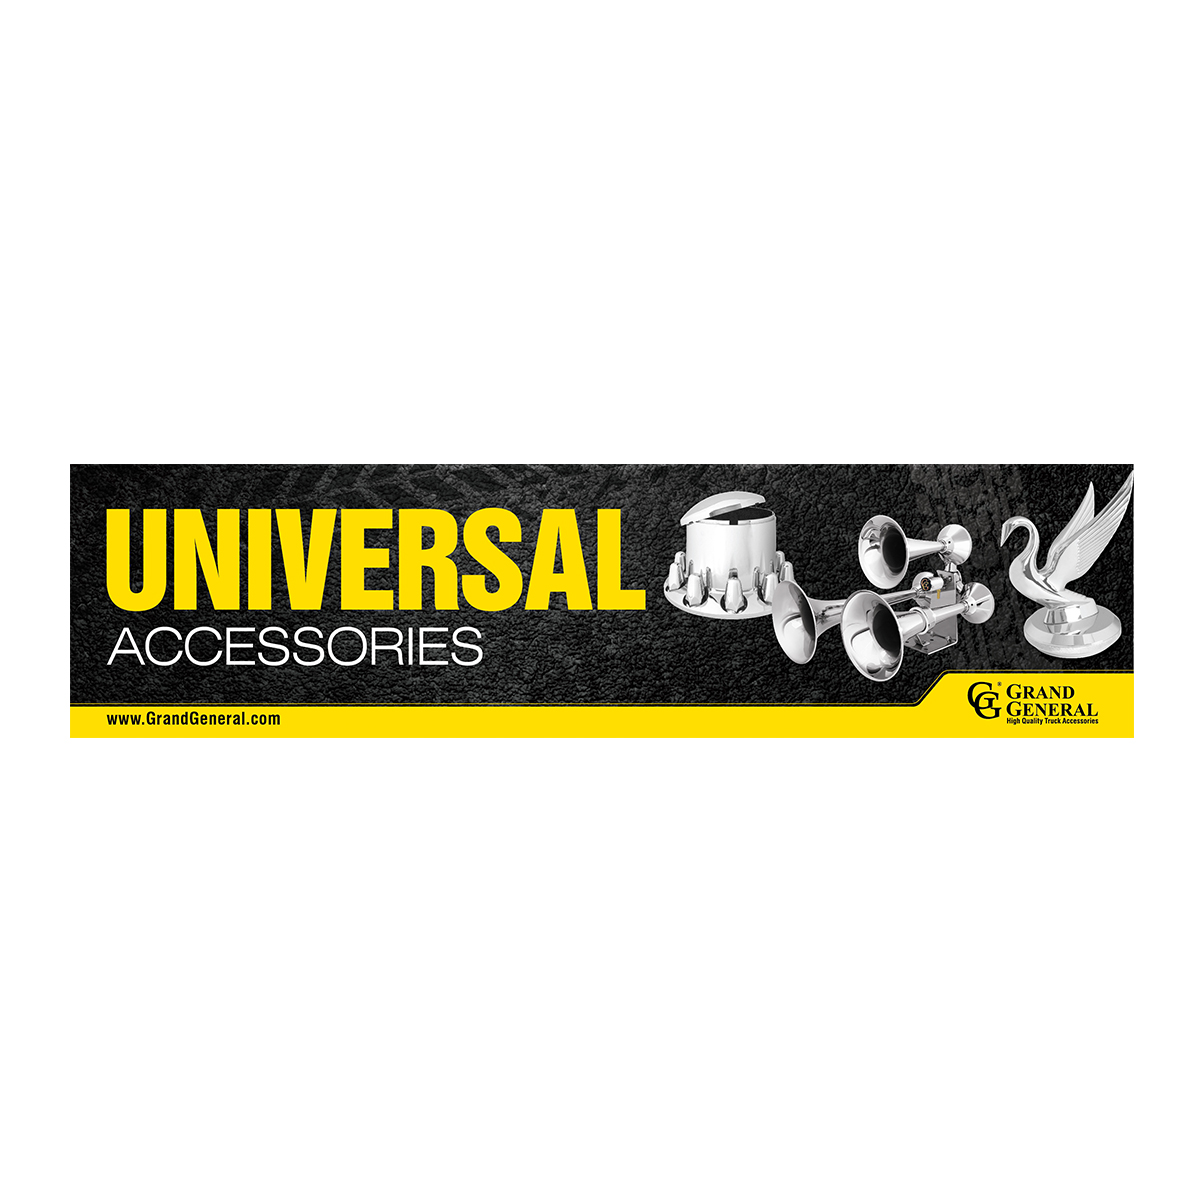 Universal Accessories Display Sign 4'(W) x 1'(H)